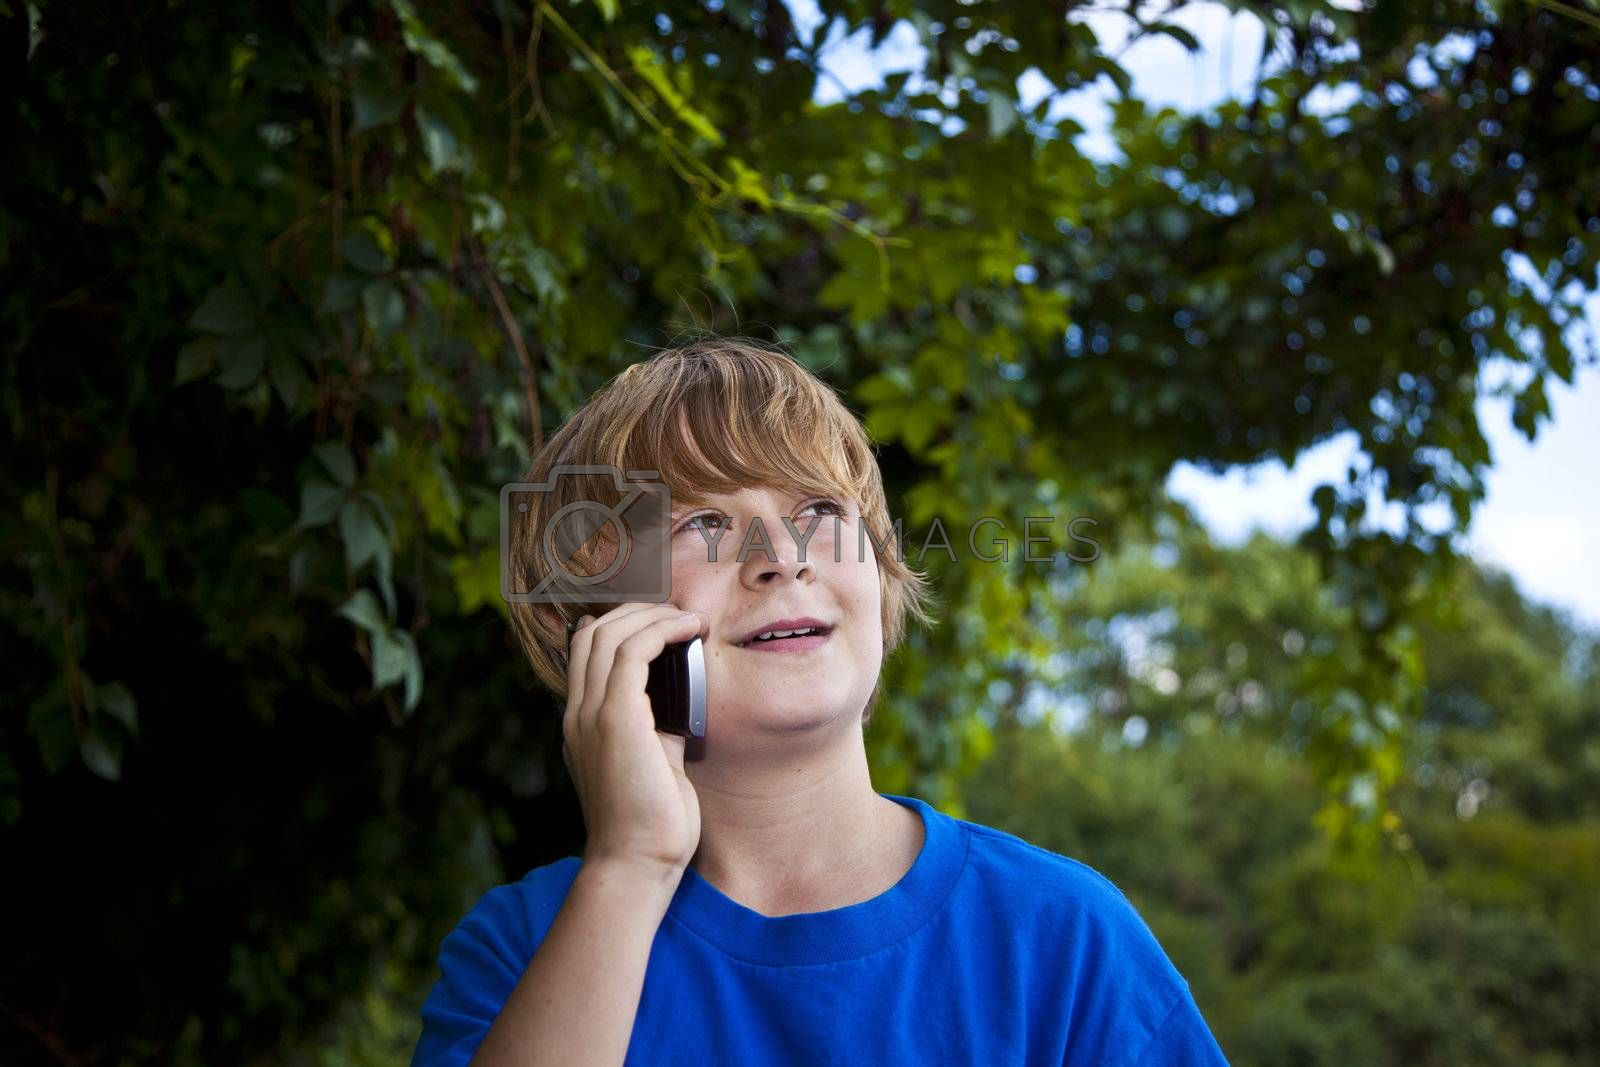 A young boy talking on a cell phone.